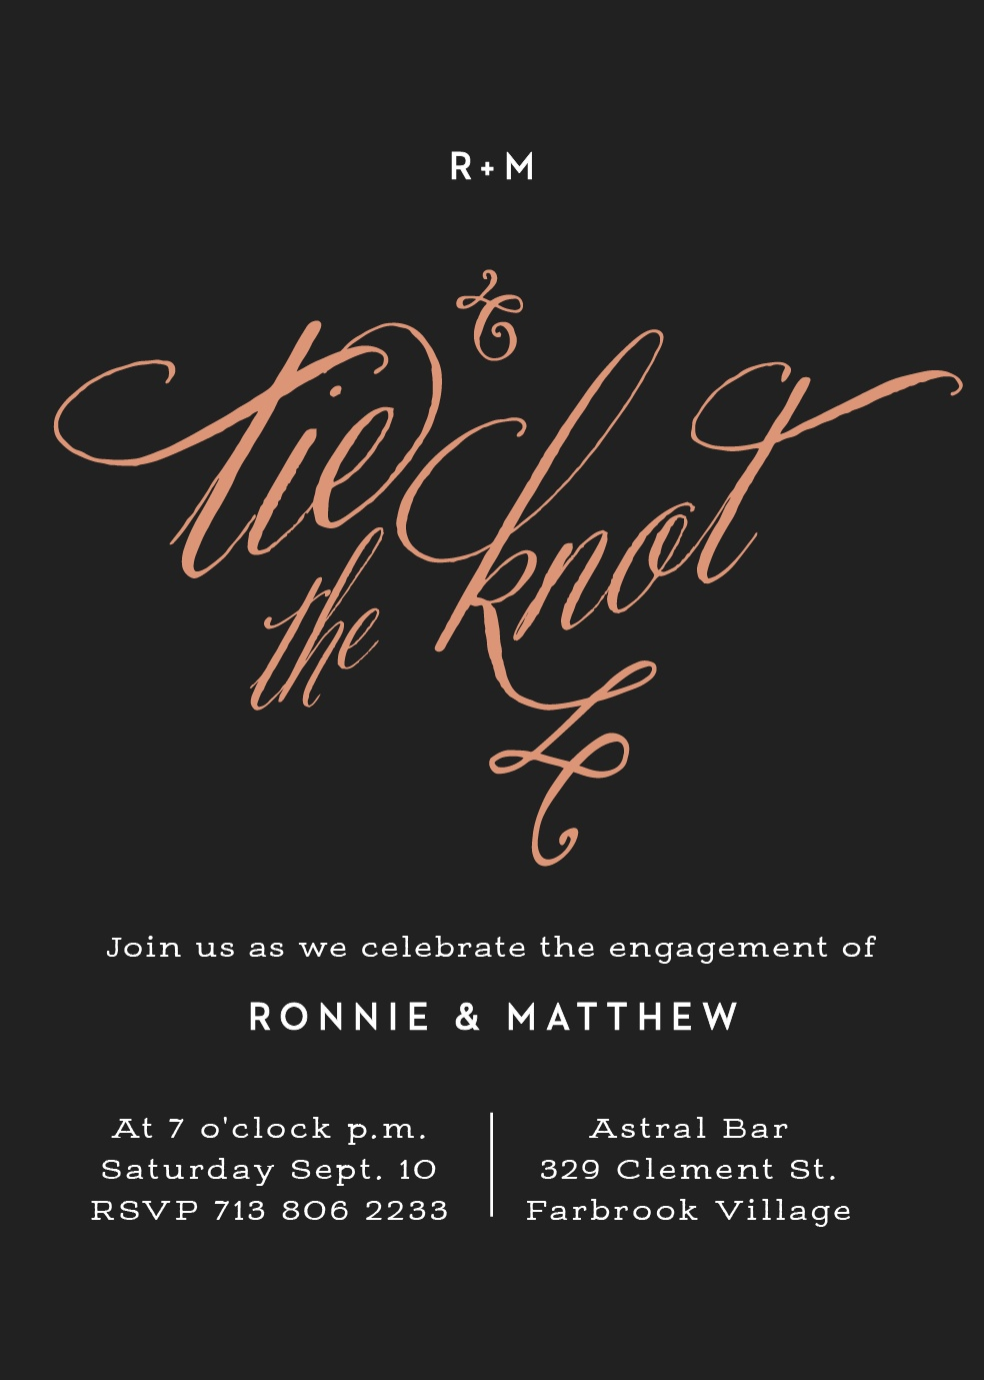 Engagement Party Foil Invitation from Basic Invite